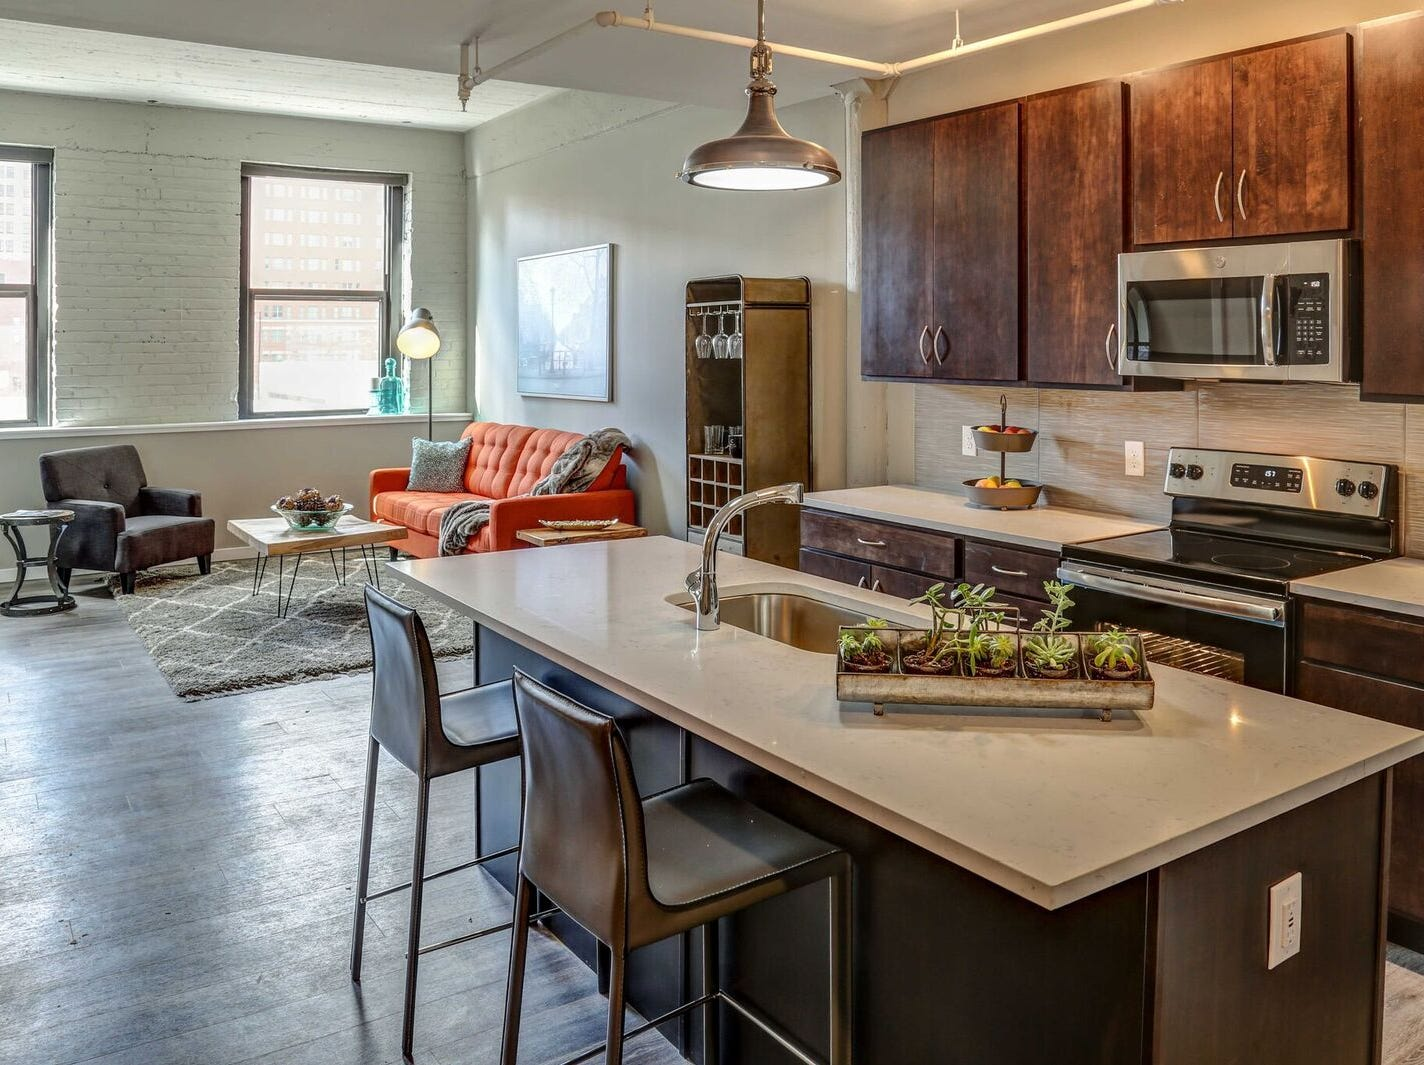 Monthly rents range from $1,185 to $3,170.